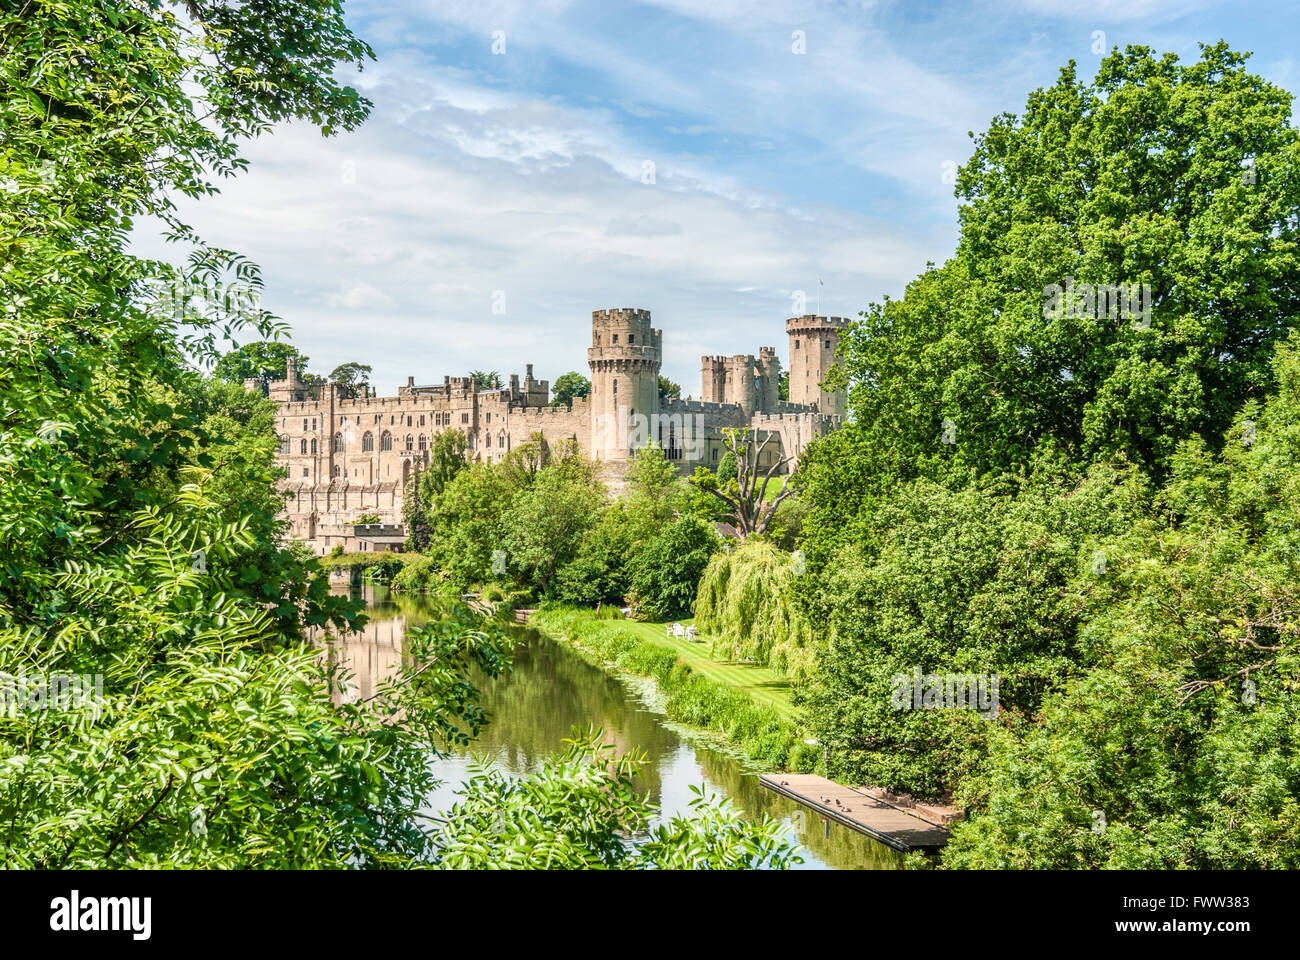 Warwick Castle is a medieval castle in Warwick, the county town of Warwickshire, England, UK - Stock Image